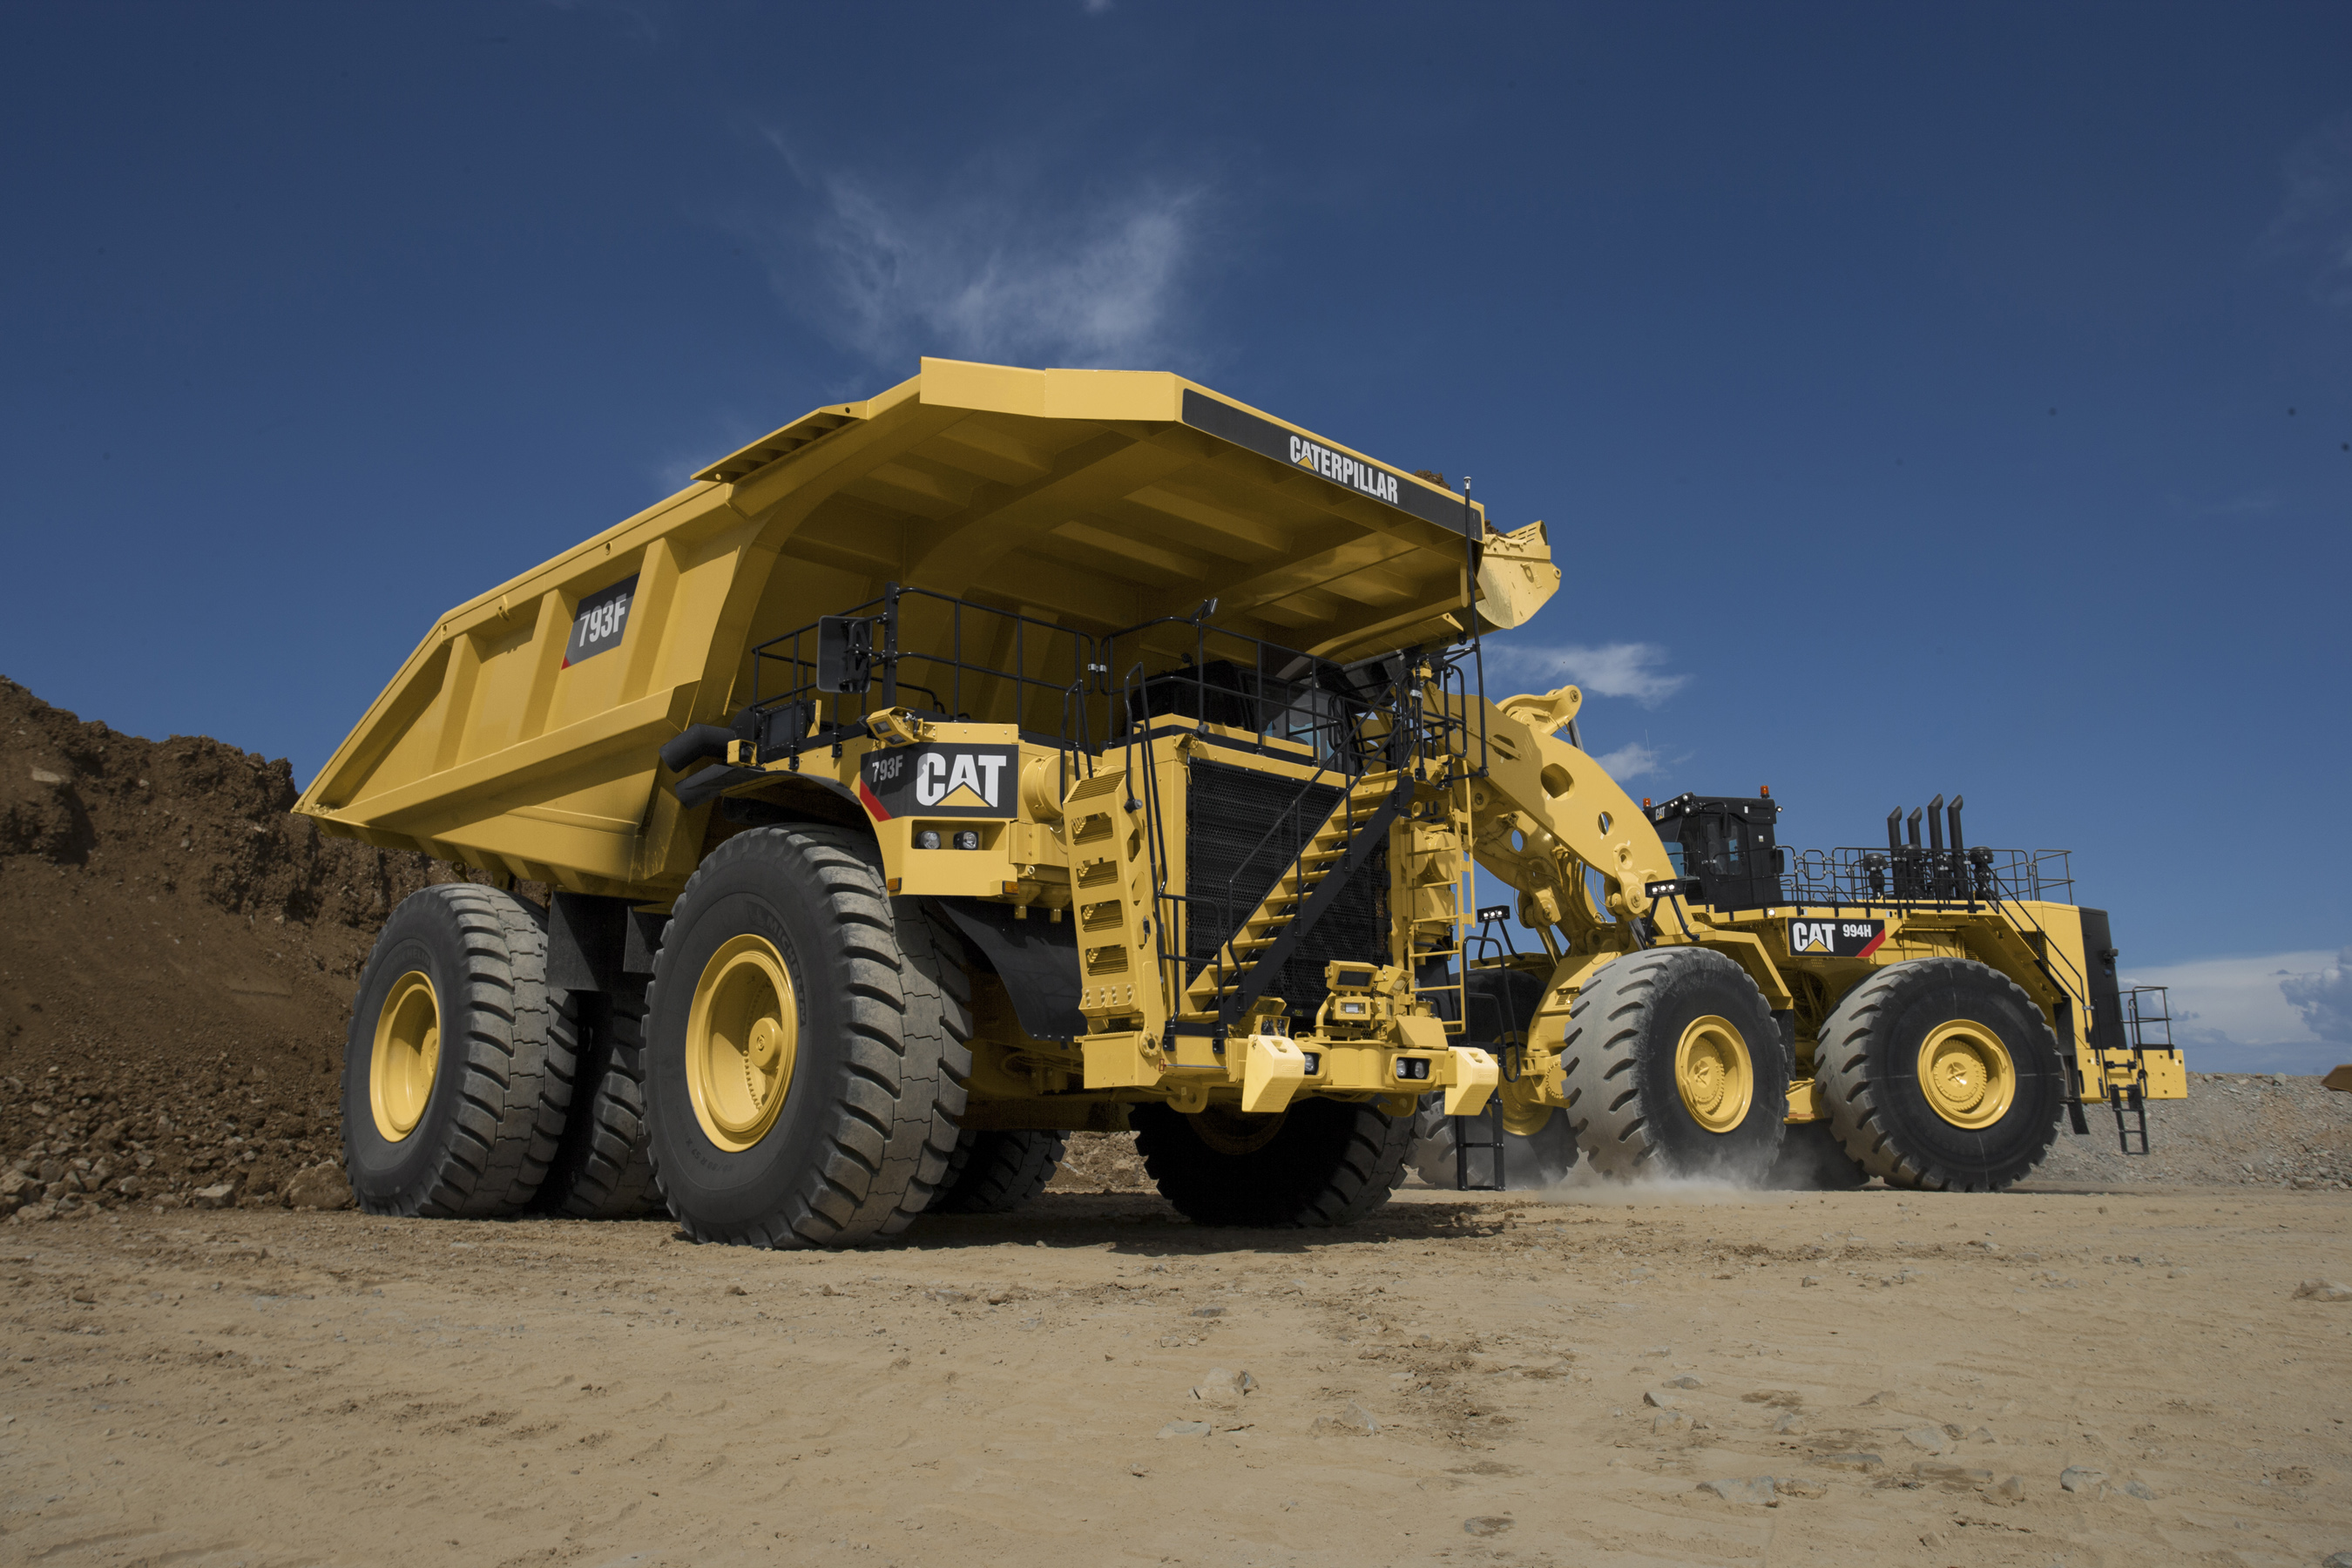 Cat 793F mining truck being loaded by Cat wheel loader.